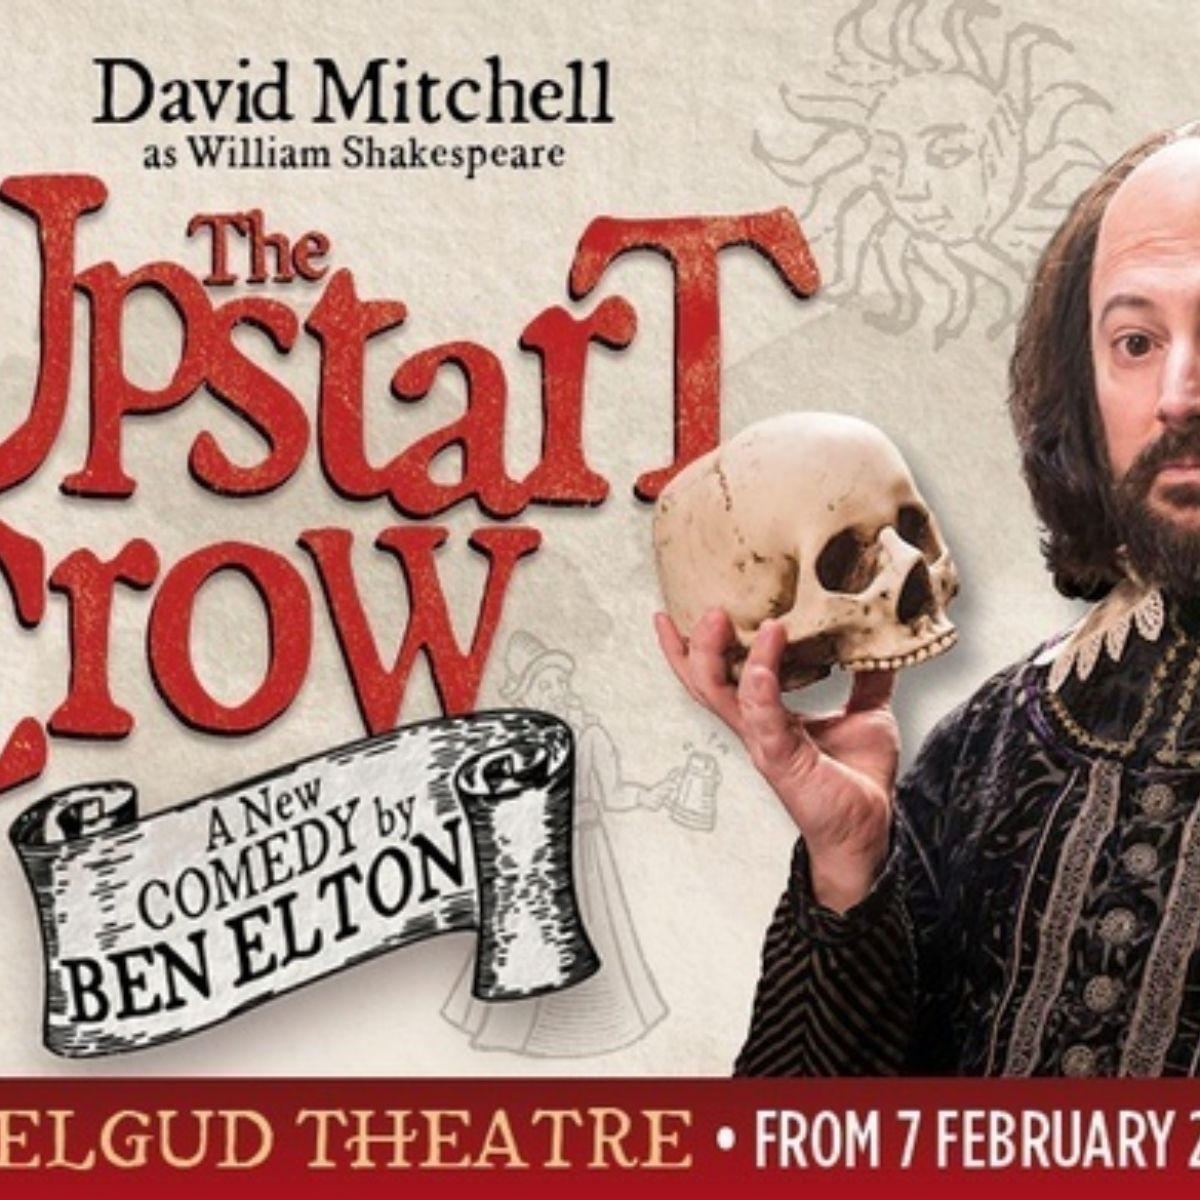 The Upstart Crow Images